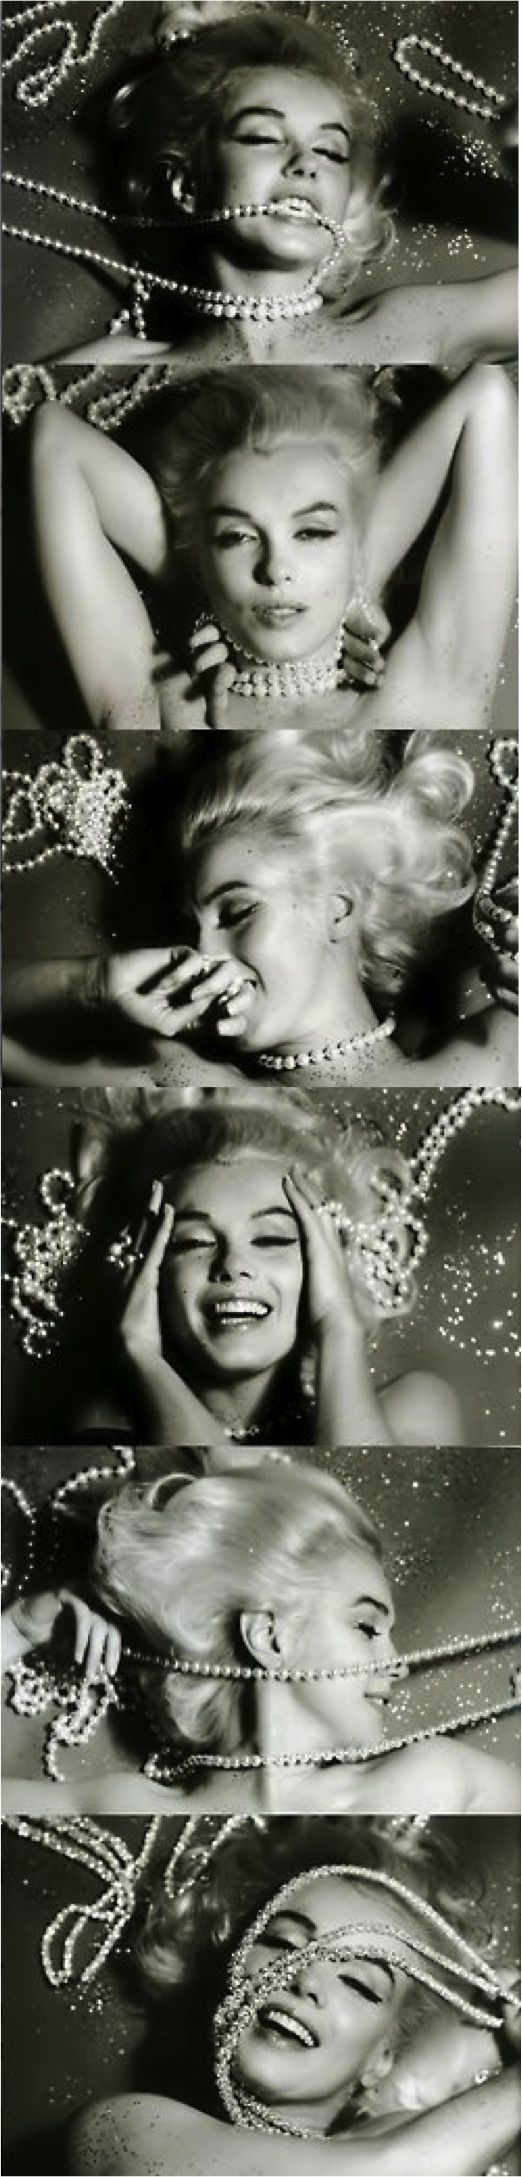 Marilyn Monroe photographed by Bert Stern,  1962. ☀ Apologies, but the original link of this Pin led to Spam!